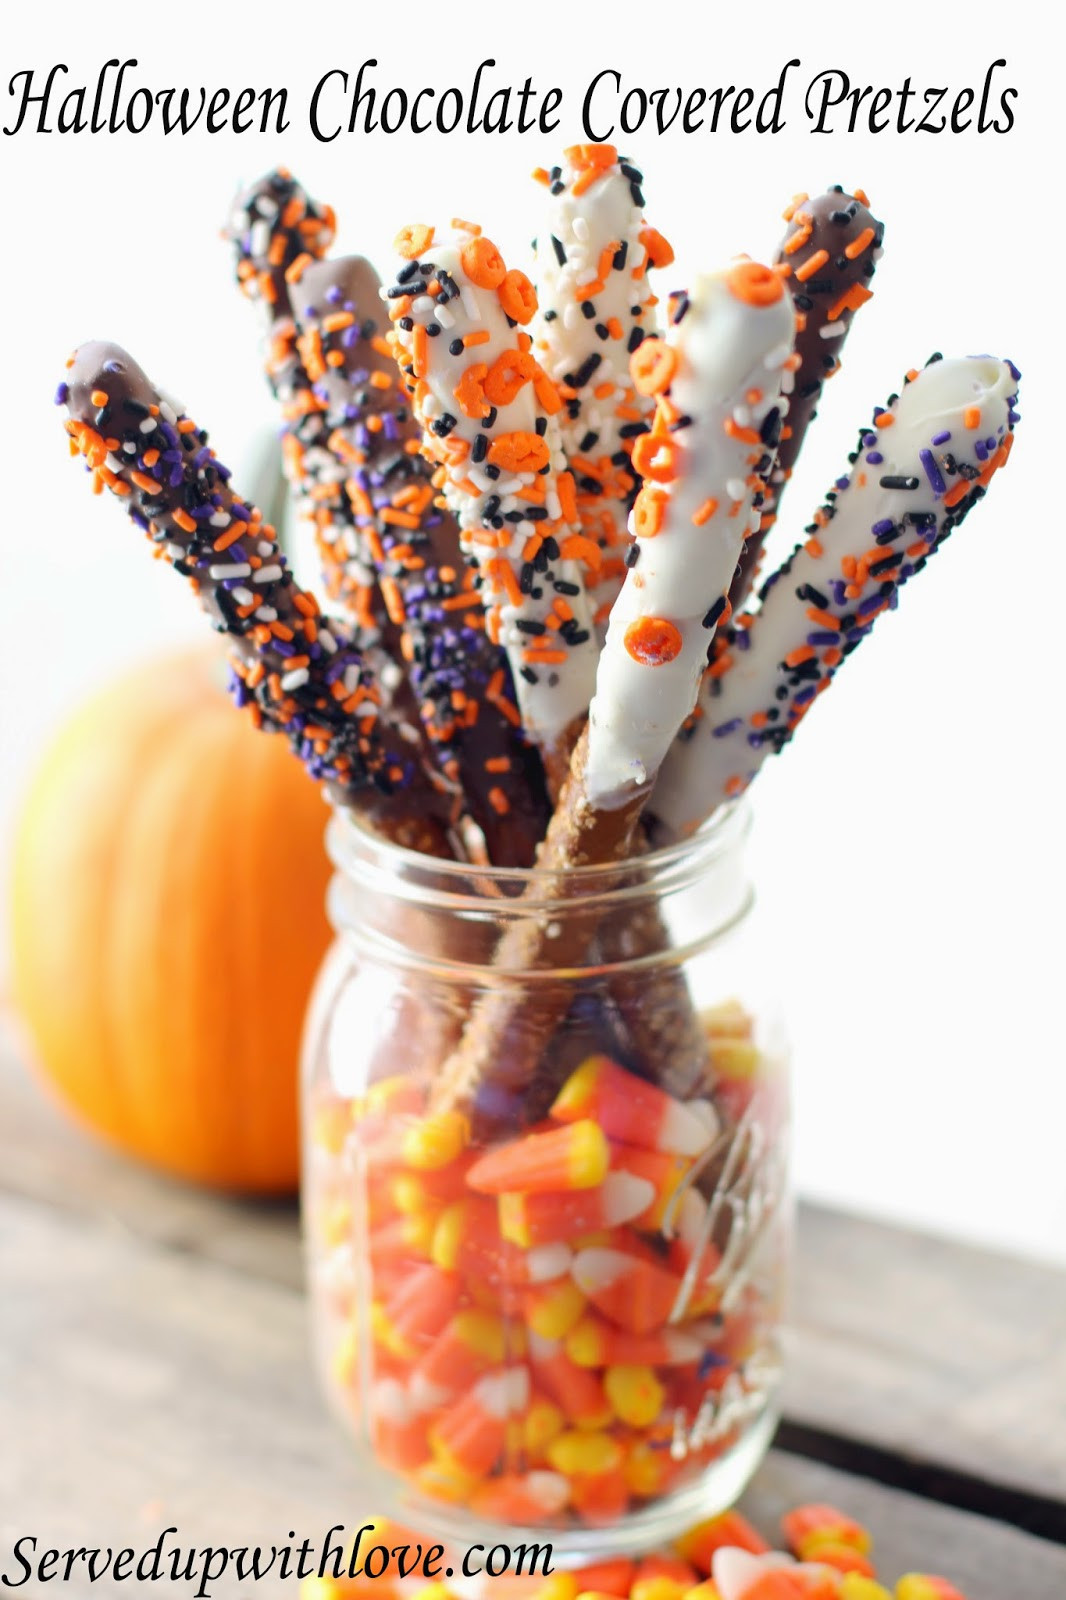 Chocolate Dipped Pretzels For Halloween  Served Up With Love Halloween Chocolate Covered Pretzels